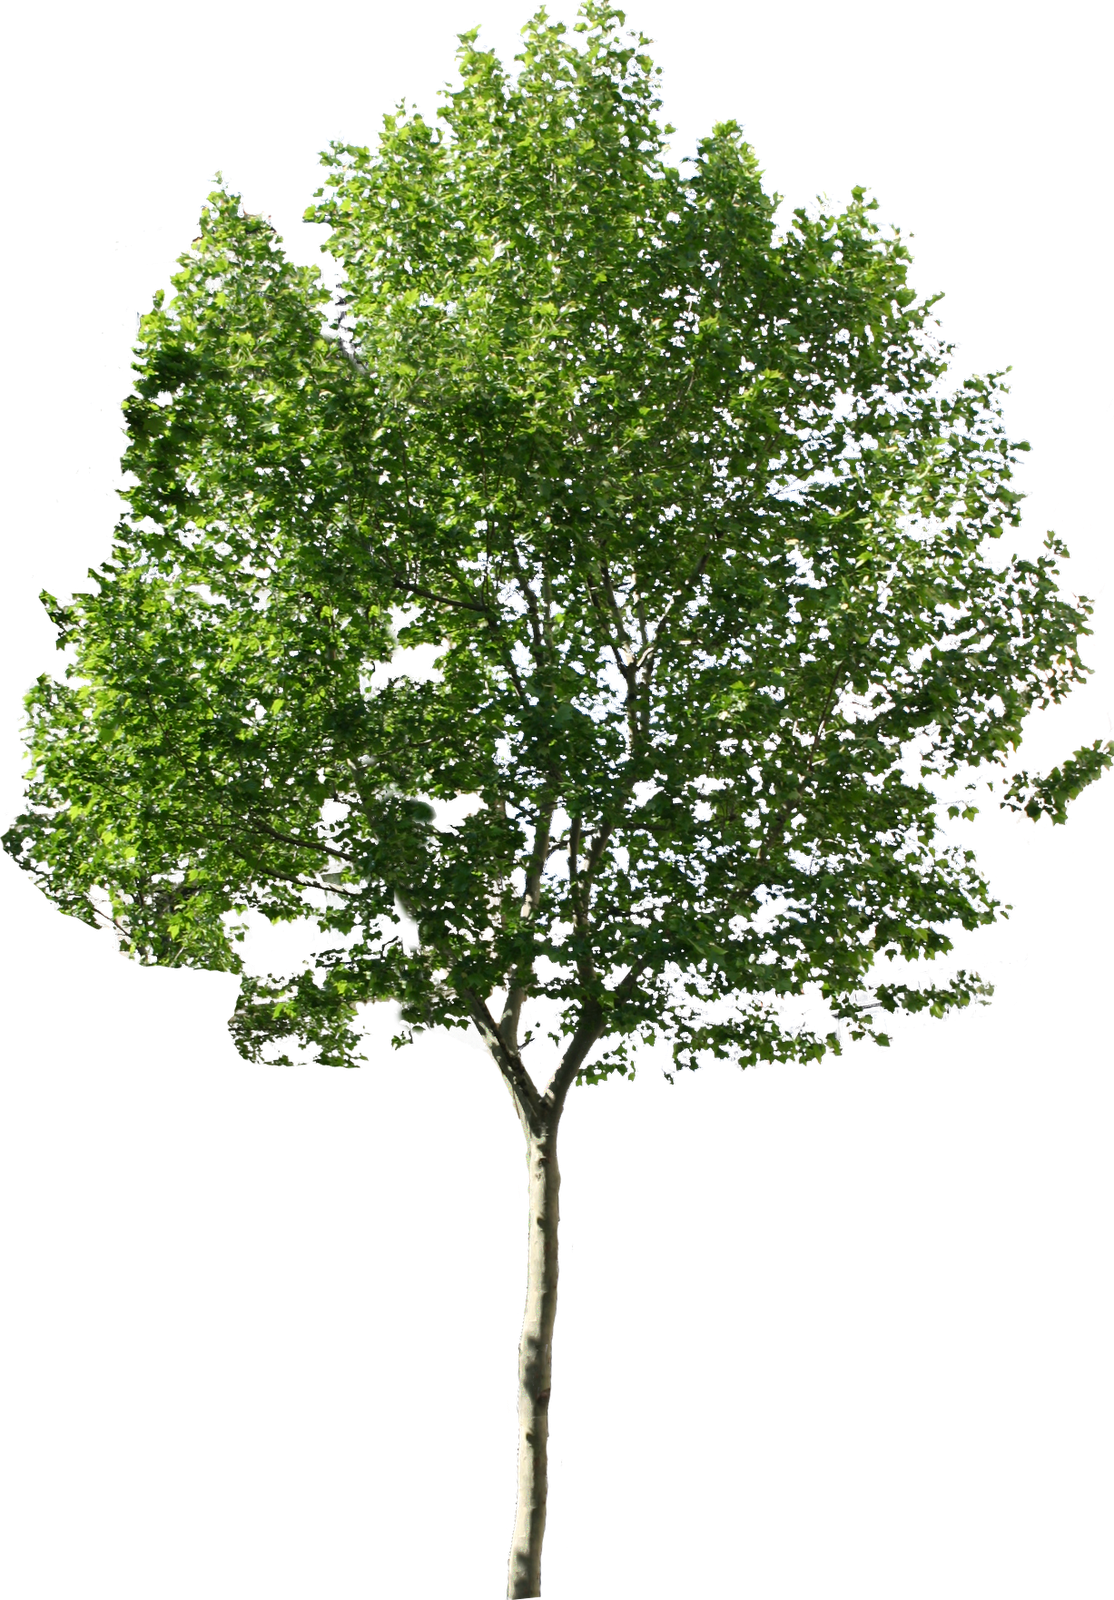 Aspen tree clipart image library download png tree | Drawing-Photoshop | Pinterest | Photoshop, Landscaping and Ps image library download